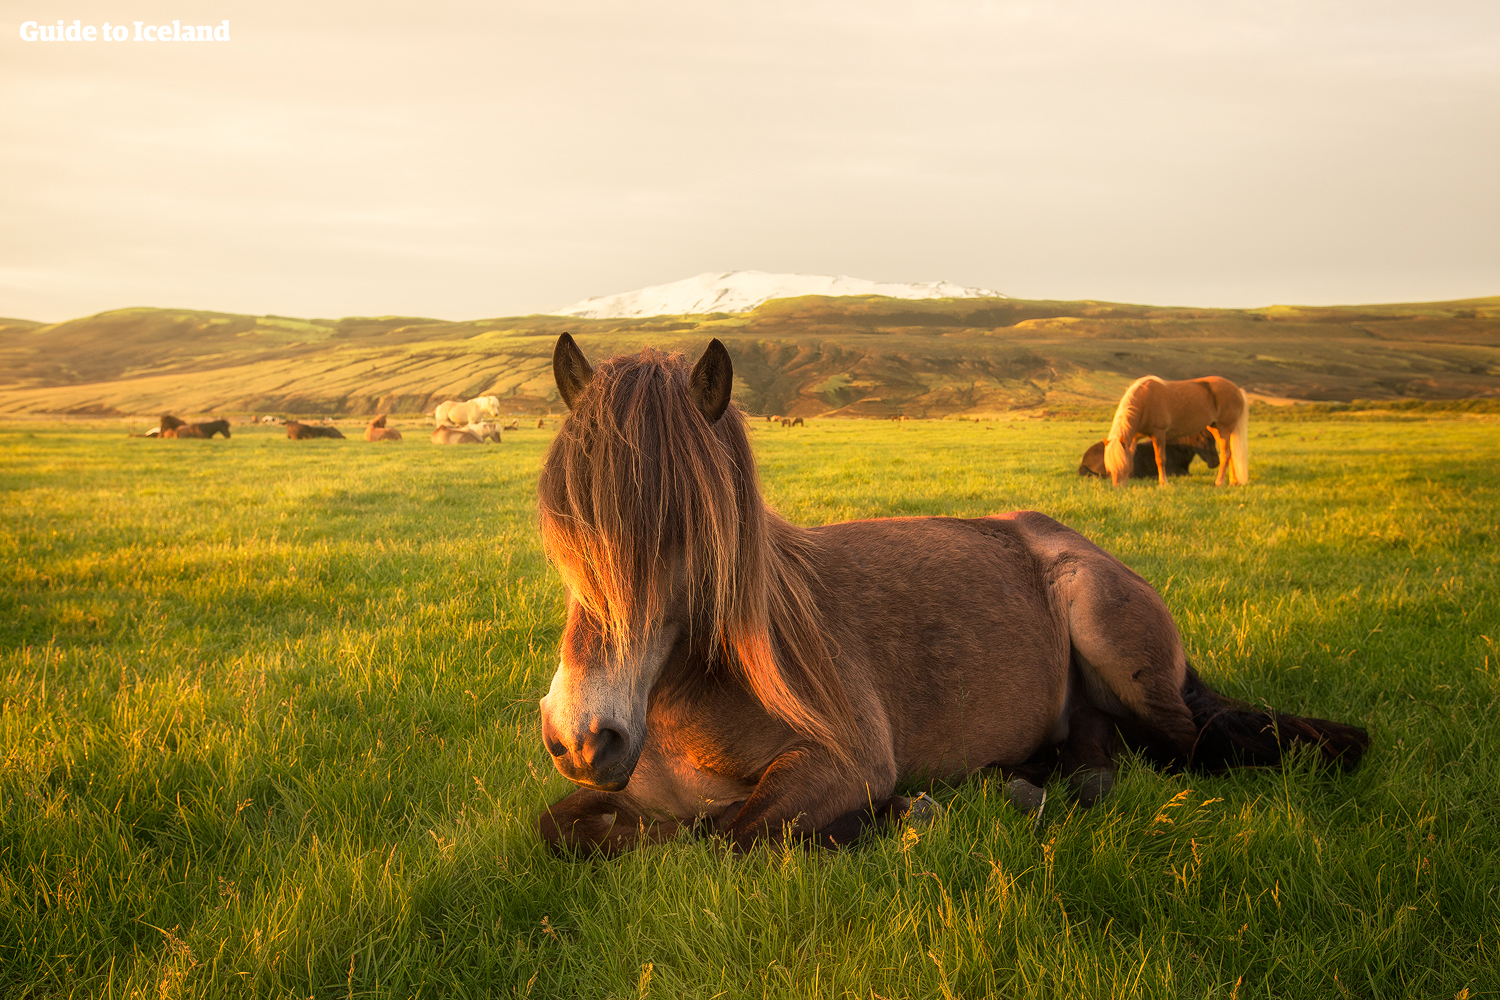 Icelandic horses lazing while Hekla, one of the world's deadliest volcanoes, rests in the background.